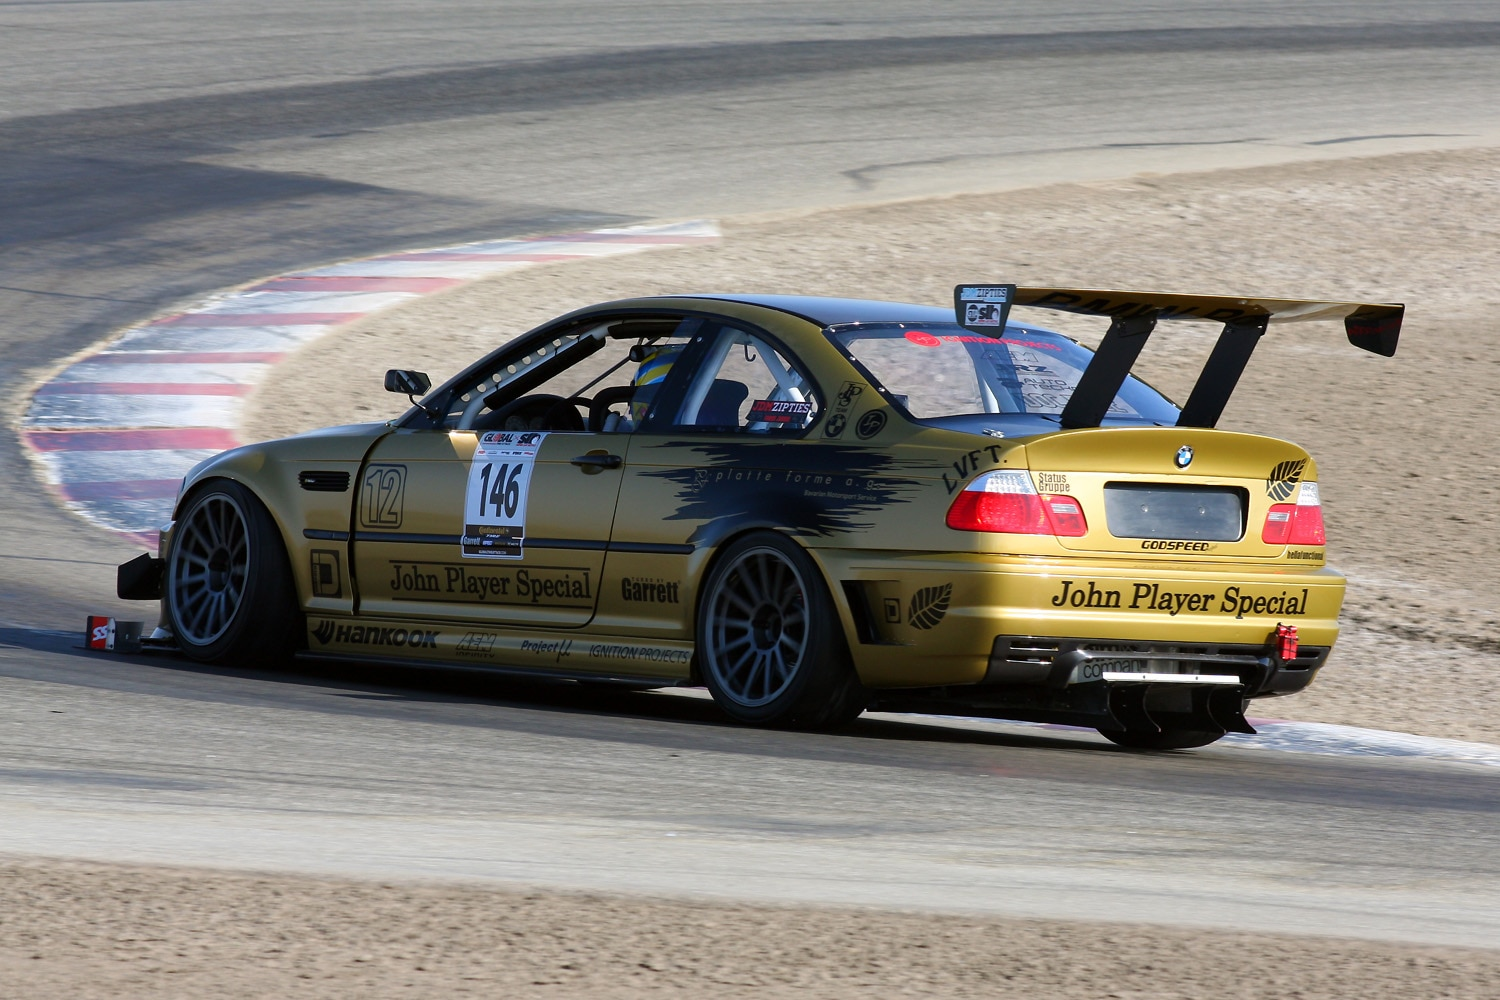 Euros Super Lap Battle GTA 2013 Tyler Mcquarrie Limited RWD Platte Forme Ag BMW E46 M3 Rear Wing